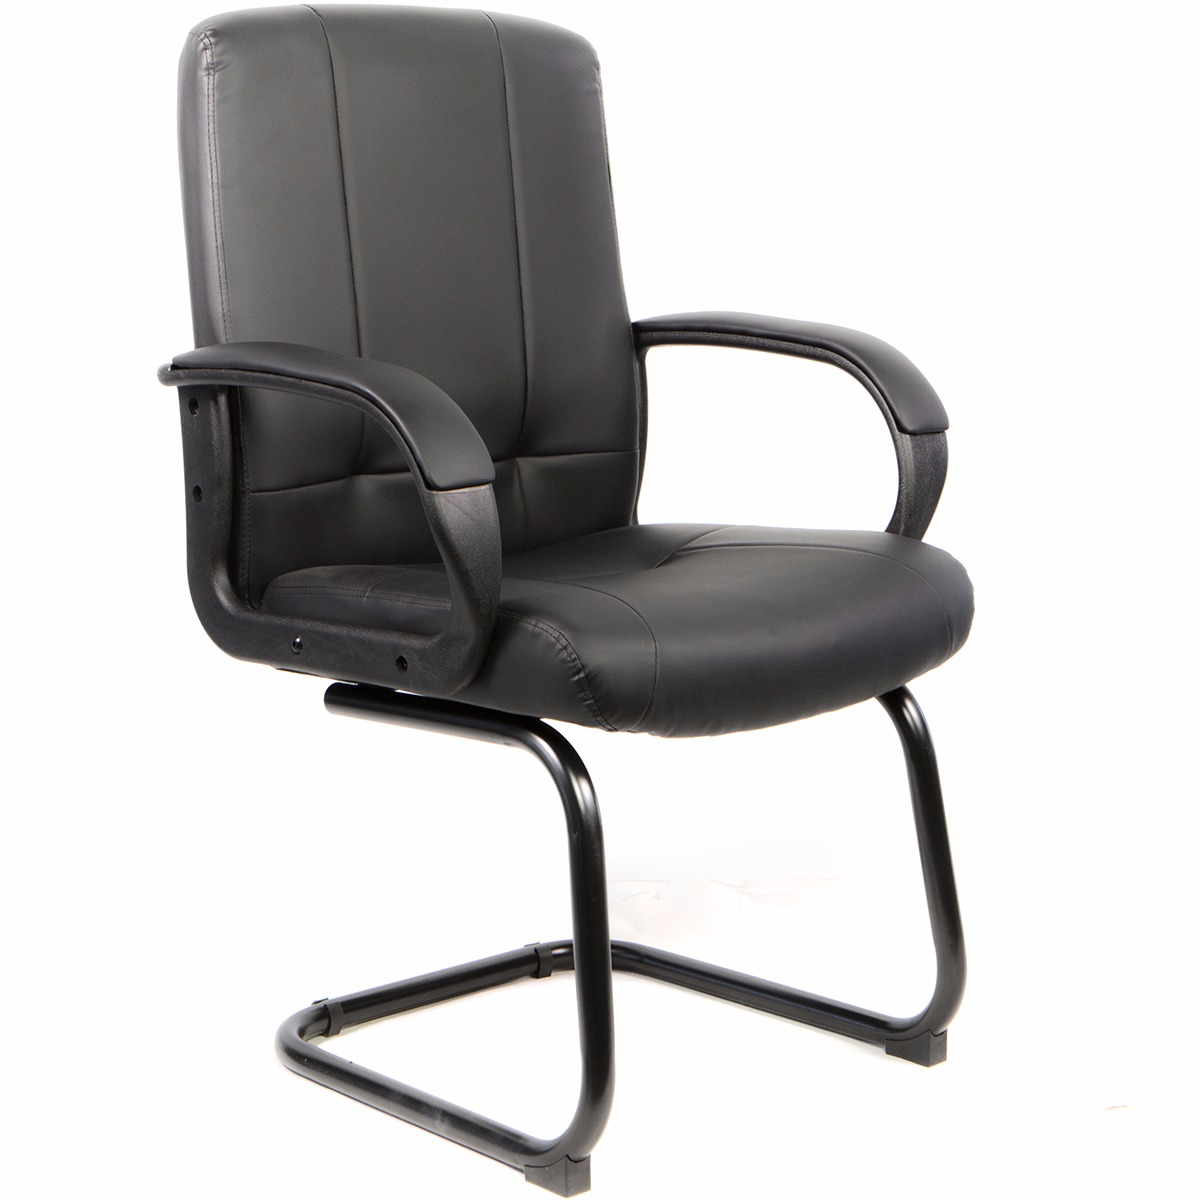 XtremepowerUS Barton Executive Ultra Thick PU Leather Receptional Office Chair, Black